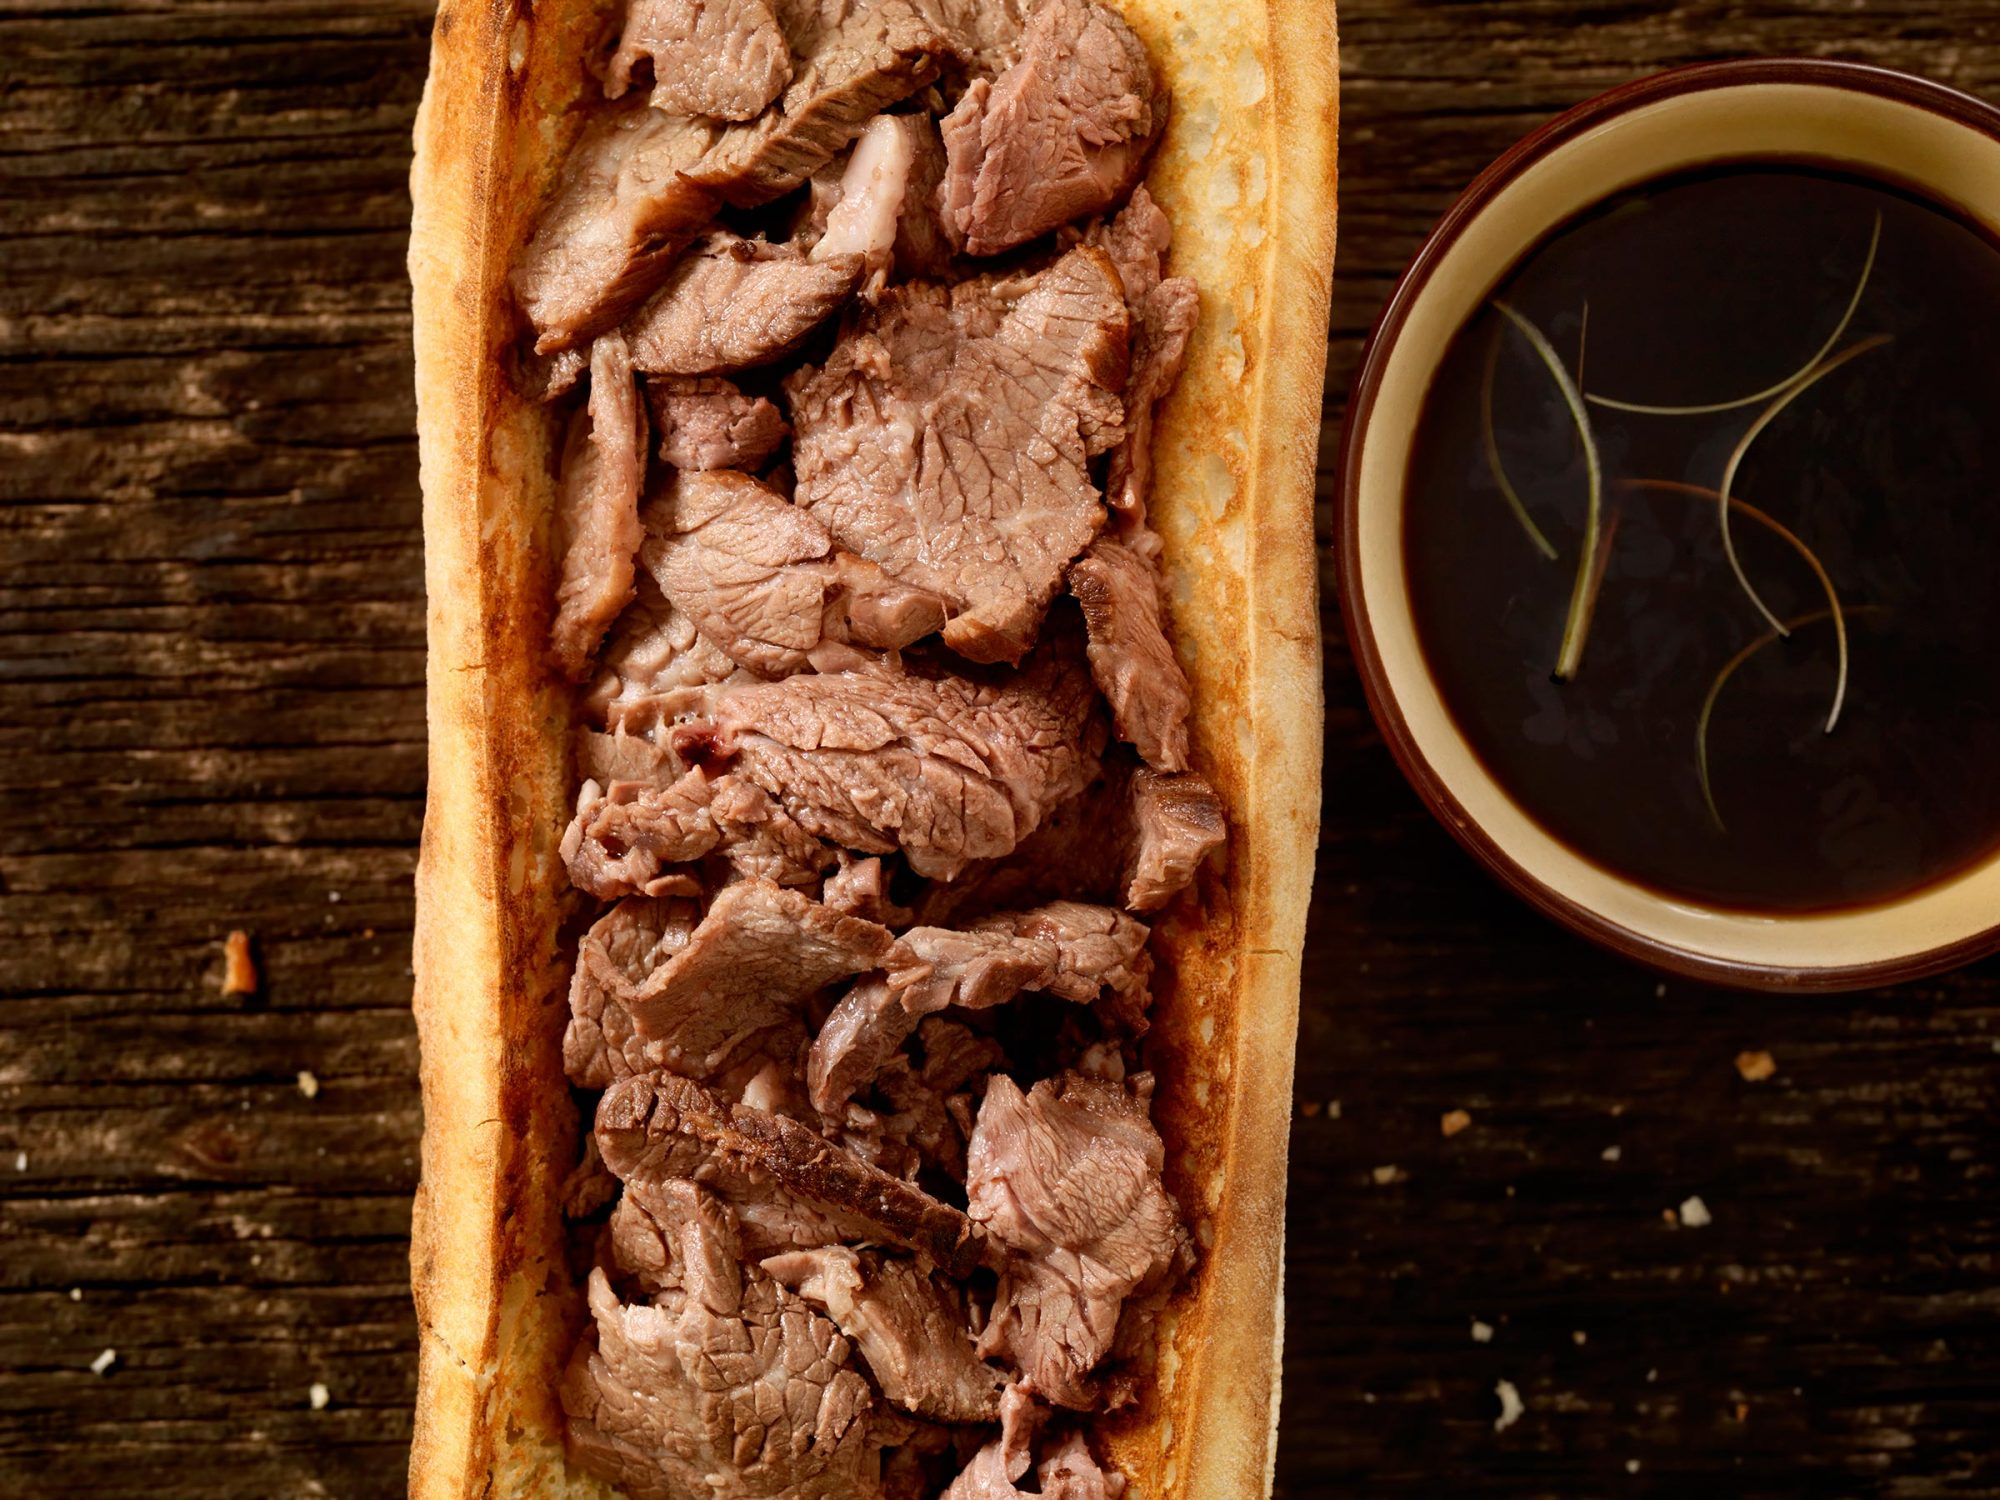 Philly Steak Sandwich with Au Jus